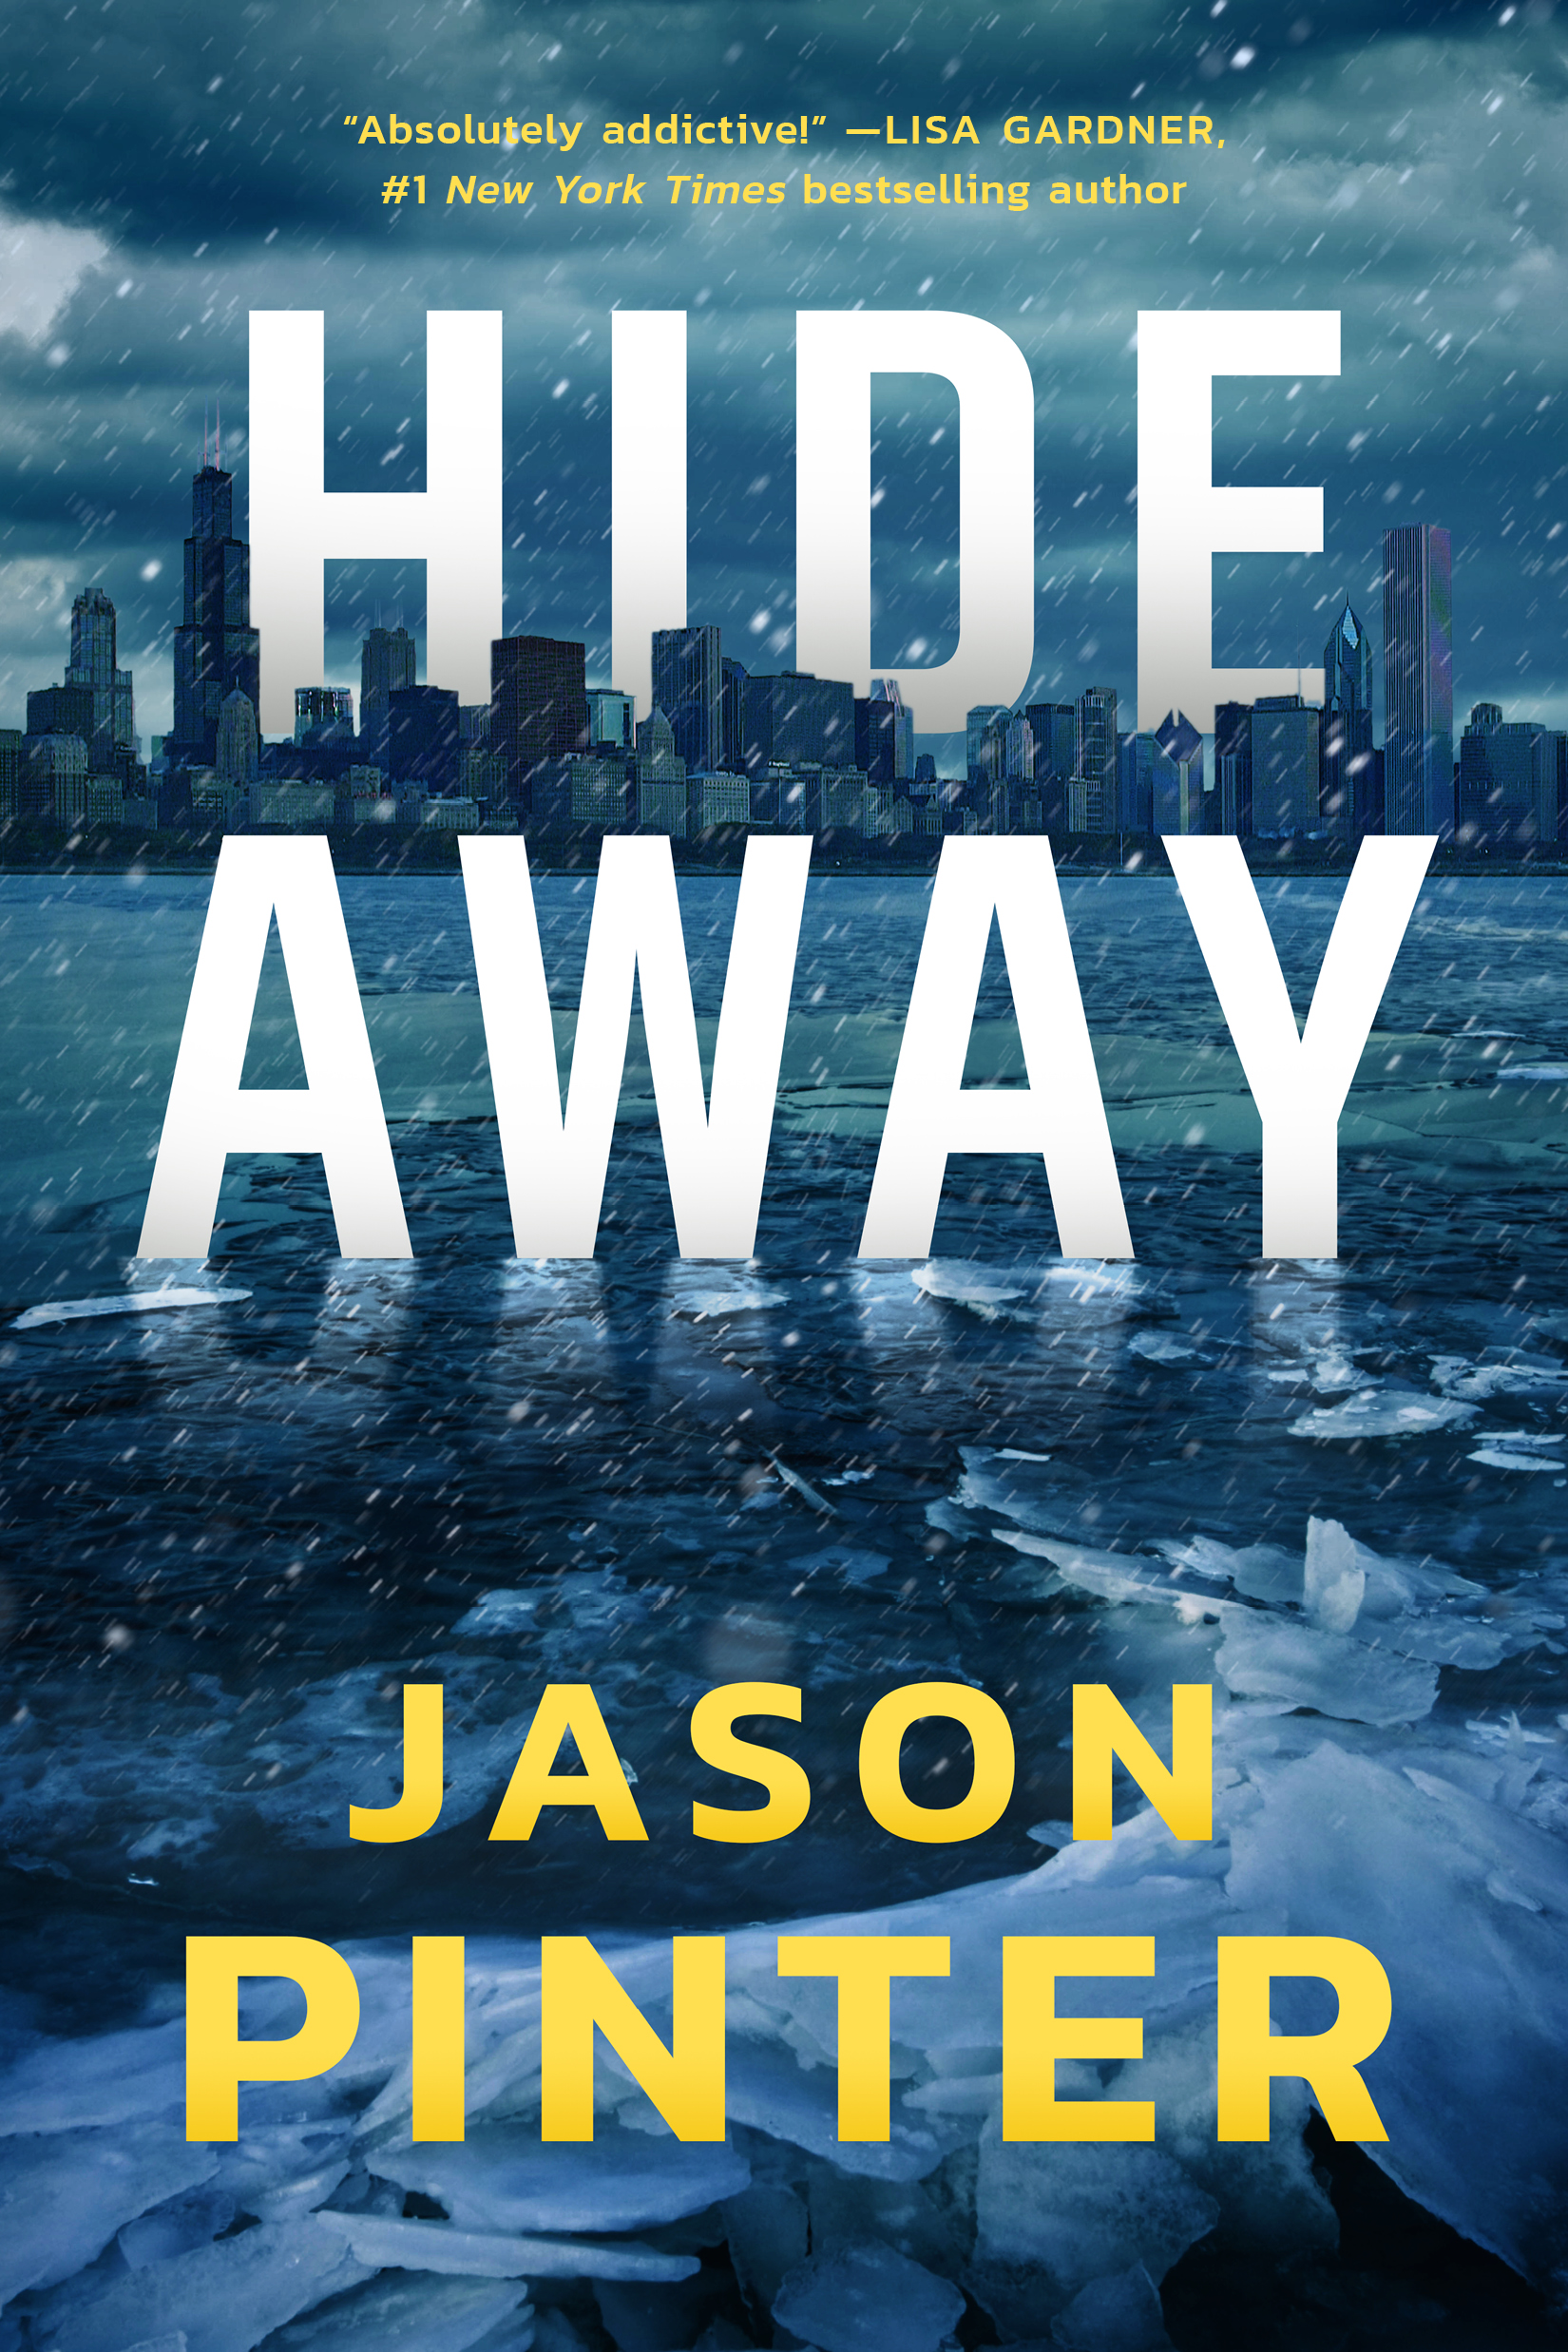 "January 2020 - ""Wow—I knew Pinter was good, but not this good. Hide Away kicks off what should be an amazing new series."" —Lee Child""Fasten your seat belt for a wild ride! Rachel Marin is a character you will root for, be awed by, and never want to cross. An ending as satisfying as it is unexpected."" —Liv Constantine, internationally bestselling author of The Last Mrs. Parrish""Some who are broken come back stronger—and ready to fight. Rachel Marin is just such a woman, and in the twisty-turny Hide Away, she faces a battle so compelling you won't be able to look away. Rachel Marin is surely one of the most fascinating new heroines in crime fiction."" —Tess Gerritsen, New York Times bestselling author of the Rizzoli & Isles series""Fast-paced and brimming with dark surprises, Jason Pinter's Hide Away is a wild ride from beginning to end. A top-rate thriller laced with intrigue, suspense, and expertly drawn characters including the complex, sympathetic, and fiercely independent Rachel Marin—a mother on a mission and my new favorite heroine."" —Heather Gudenkauf, New York Times bestselling author of The Weight of Silence and Before She Was Found""Absolutely addictive! Pinter's Hide Away breaks new ground with the kind of vigilante heroine who can hunt down the bad guys, serve up some justice, then return home in time for breakfast with the kids. Bravo!"" —Lisa Gardner, #1 New York Times bestselling author of Never TellPre-order now!Paperback • ebook • audiobookAdd on Goodreads!Coming January 2020"